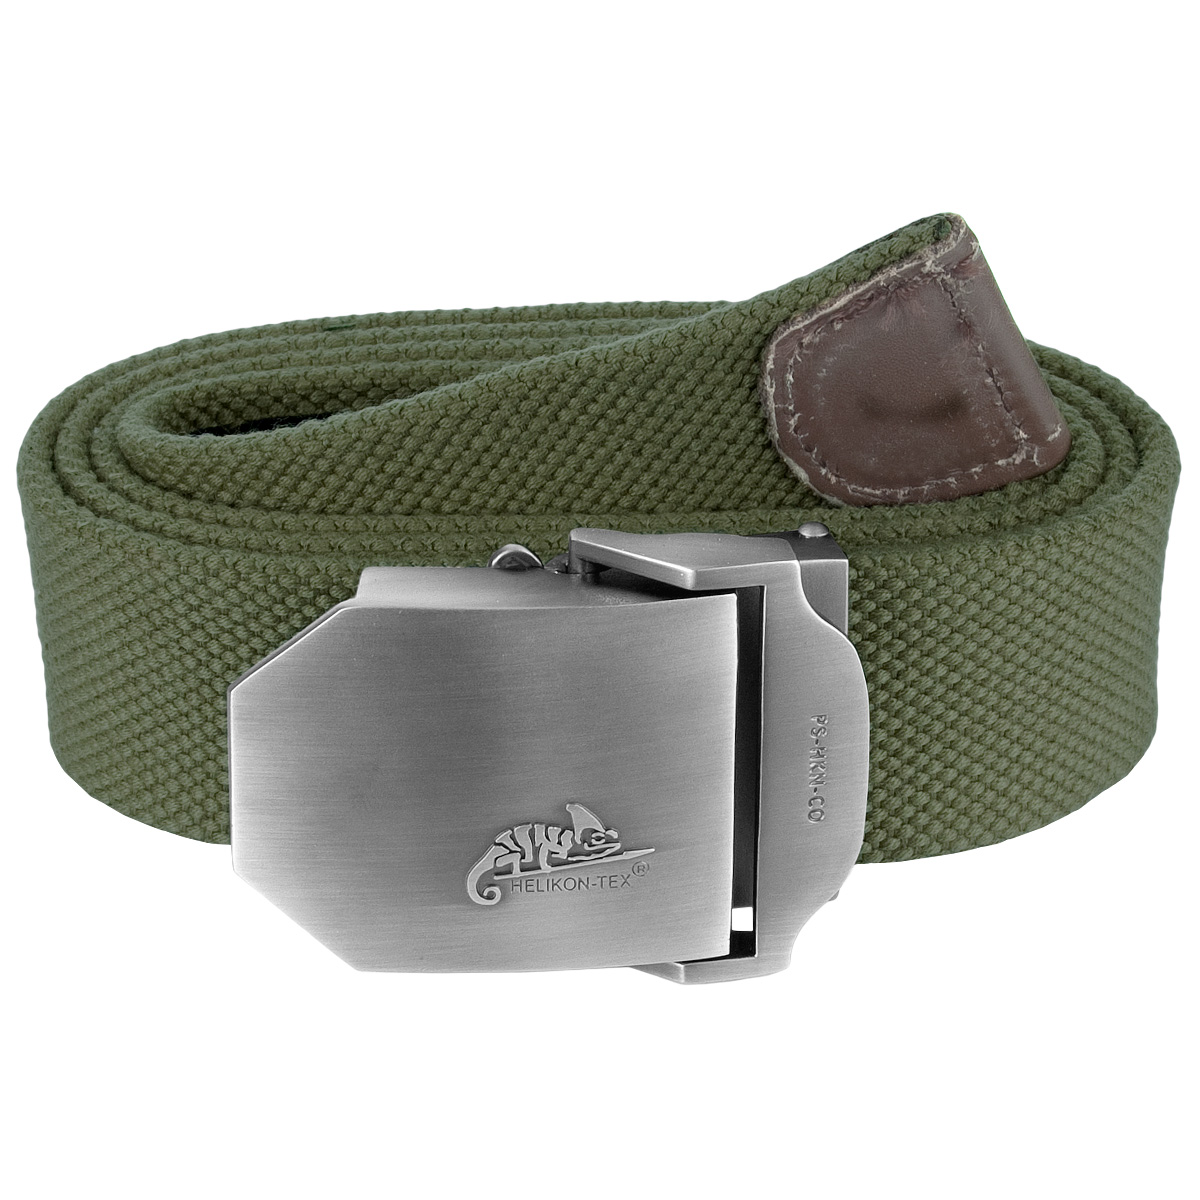 Details about HELIKON TACTICAL MENS MILITARY COTTON CANVAS BELT METAL  BUCKLE ARMY OLIVE GREEN bb52b88dccd